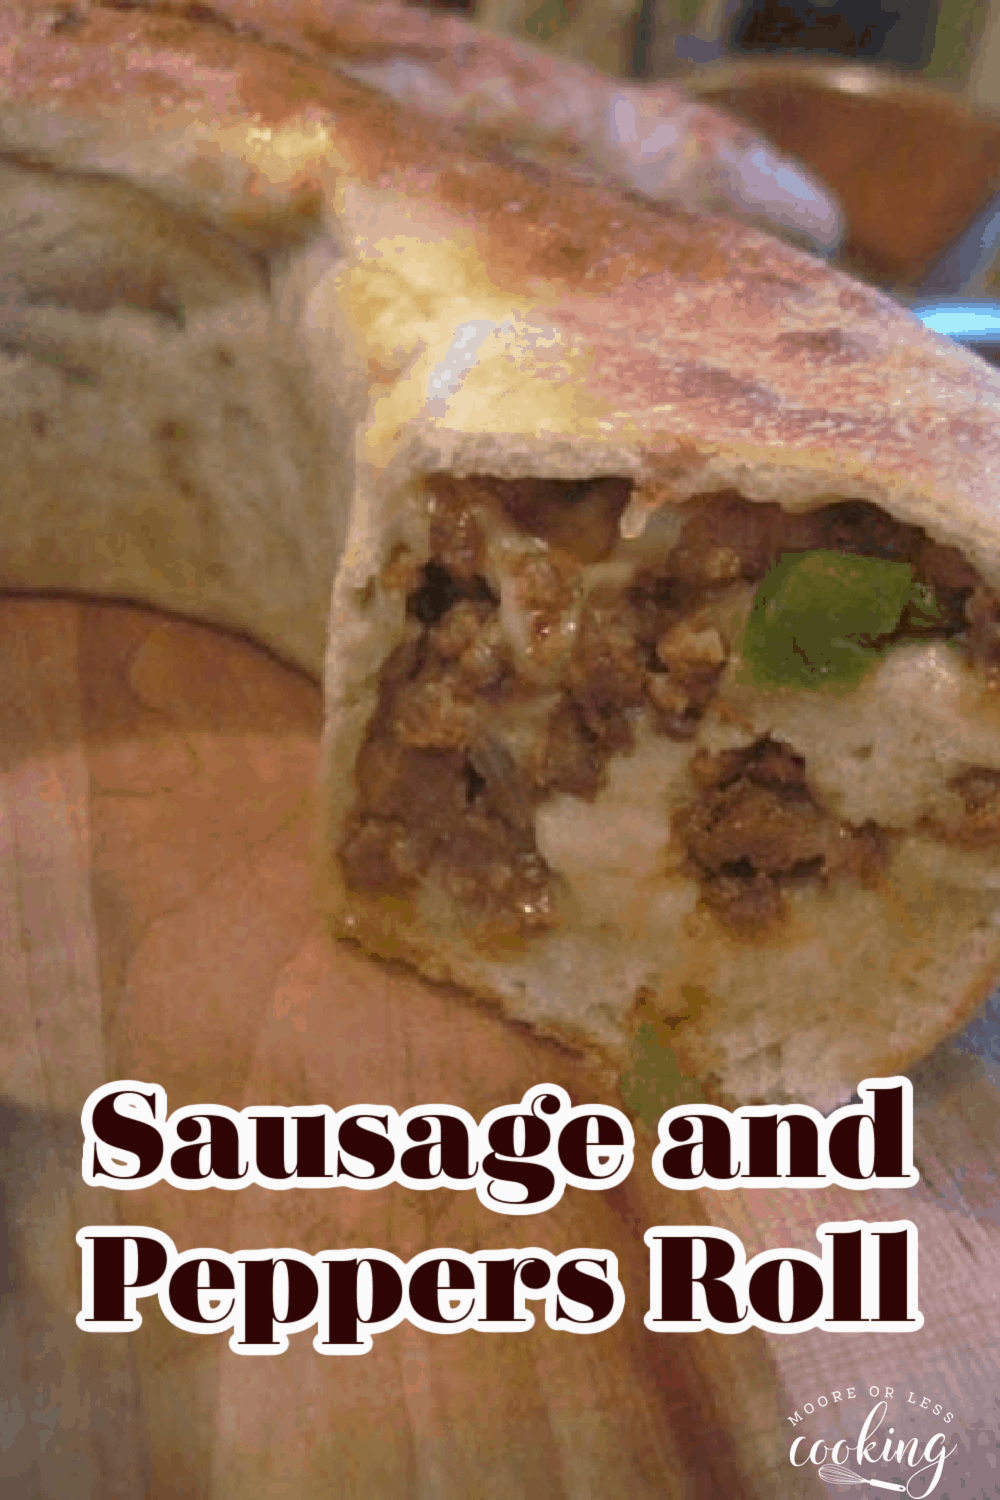 Sausage and Peppers Roll